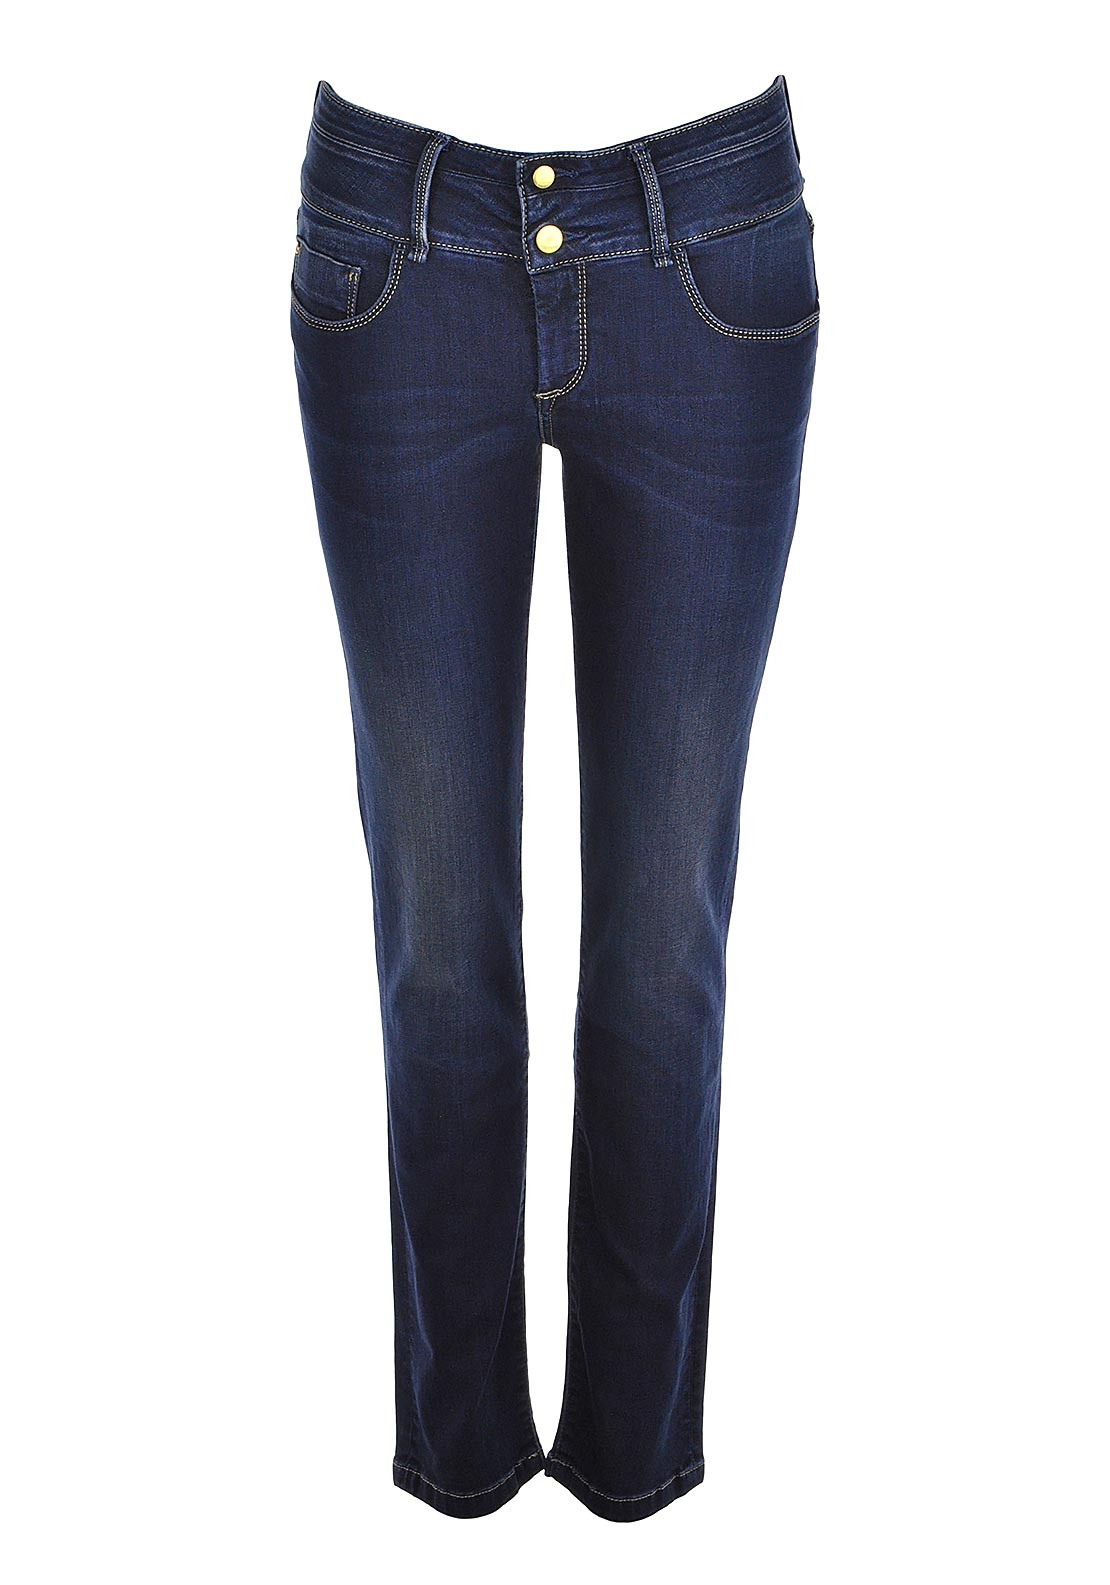 Tiffosi Double In Slim Leg Jeans, Navy